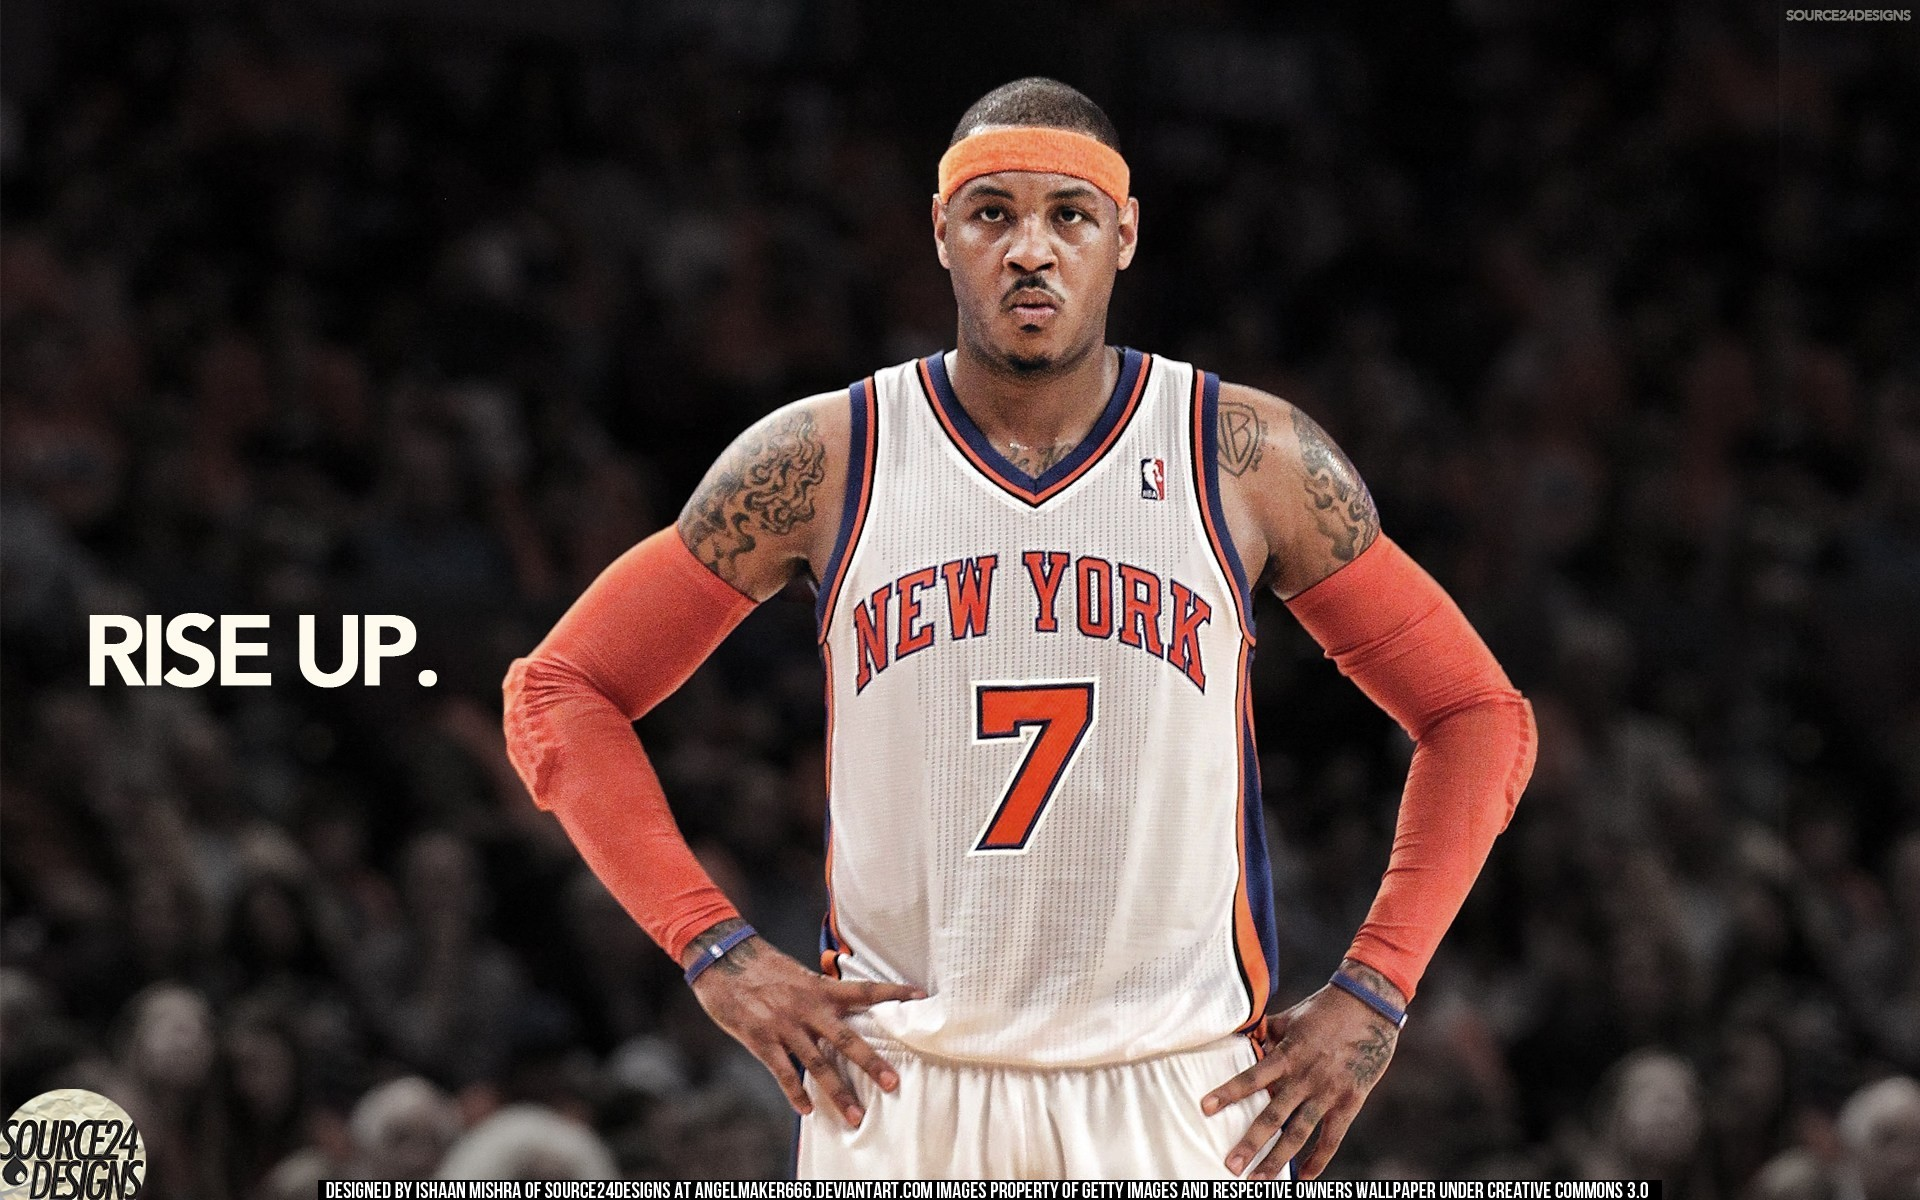 1920x1200 Player New York Knicks Carmelo Anthony 1080p HD Wallpaper Background